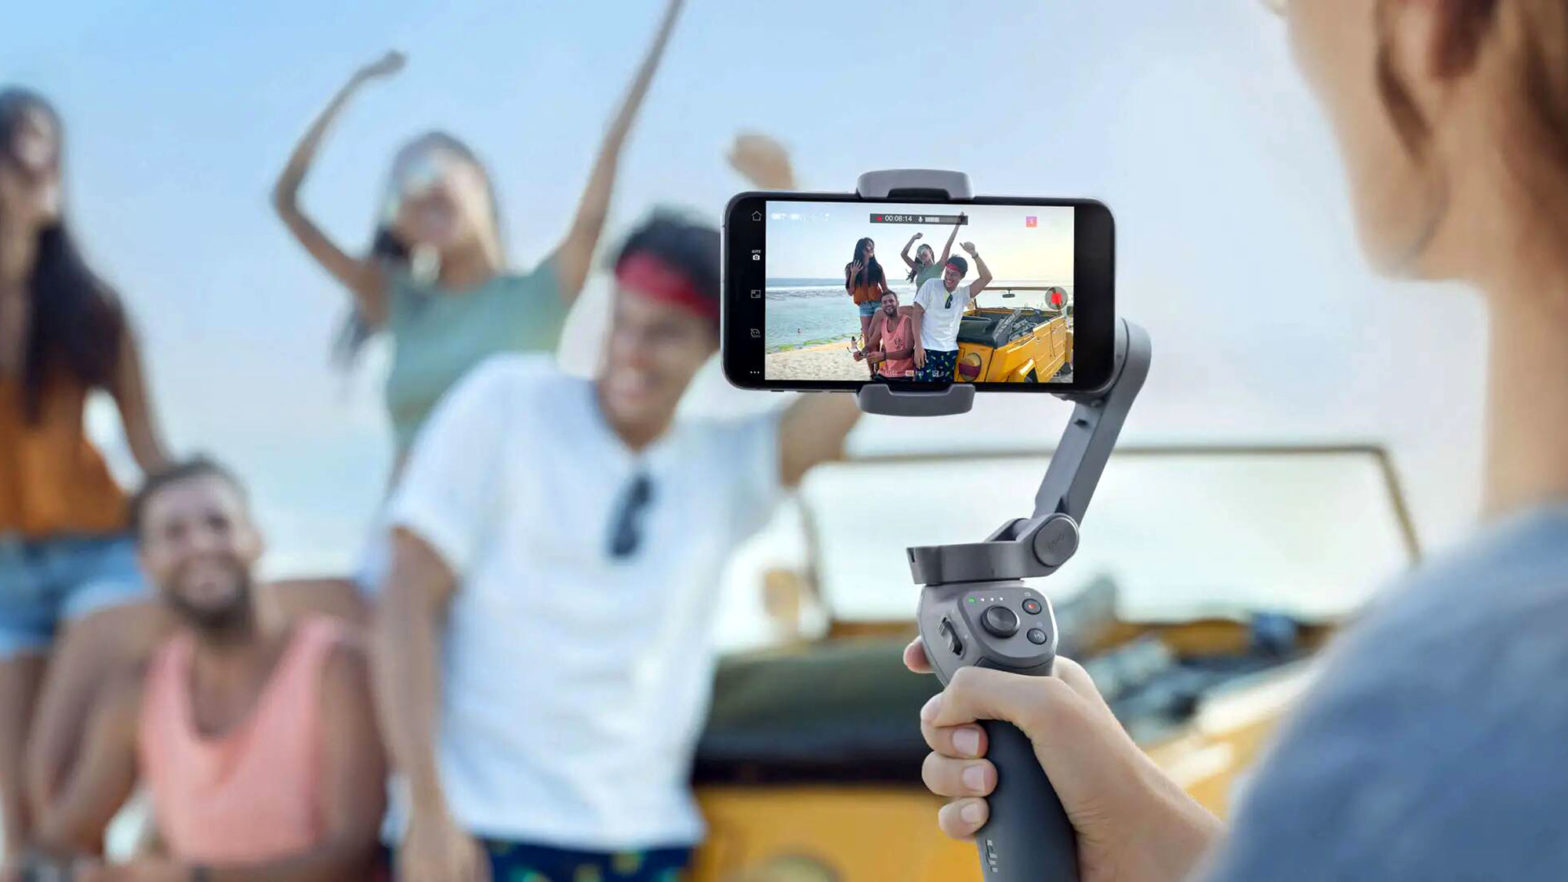 DJI OSMO Mobile 3 Foldable Mobile Gimbal